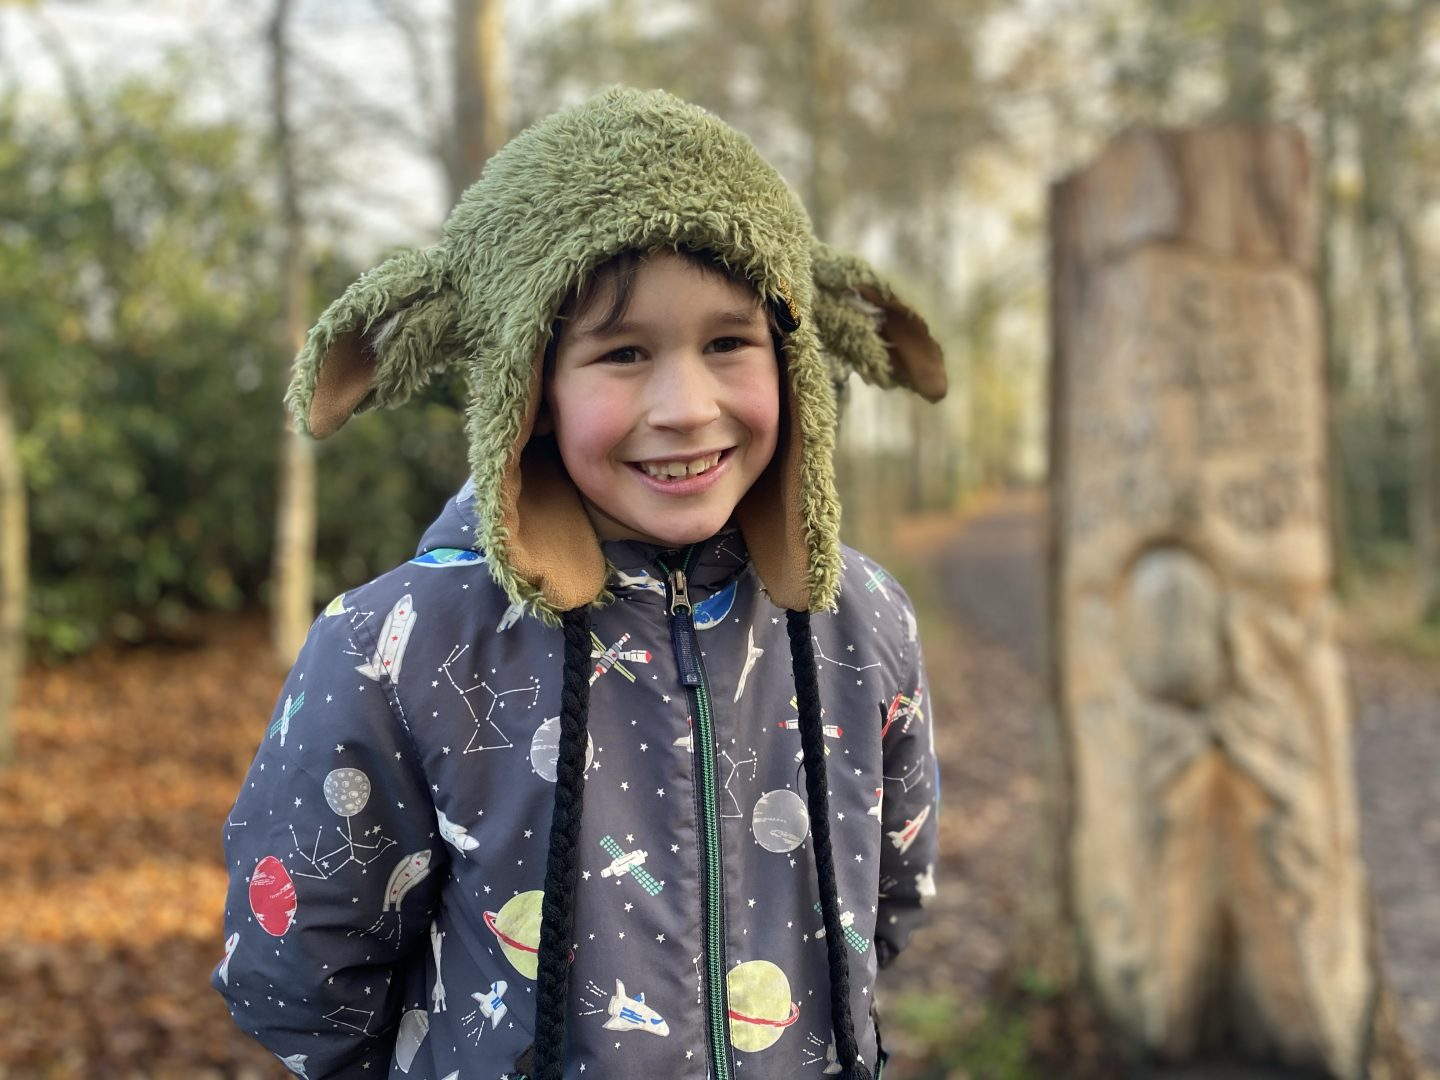 Inset day fun on a woodland walk. A young boy smiling for a picture in the woods